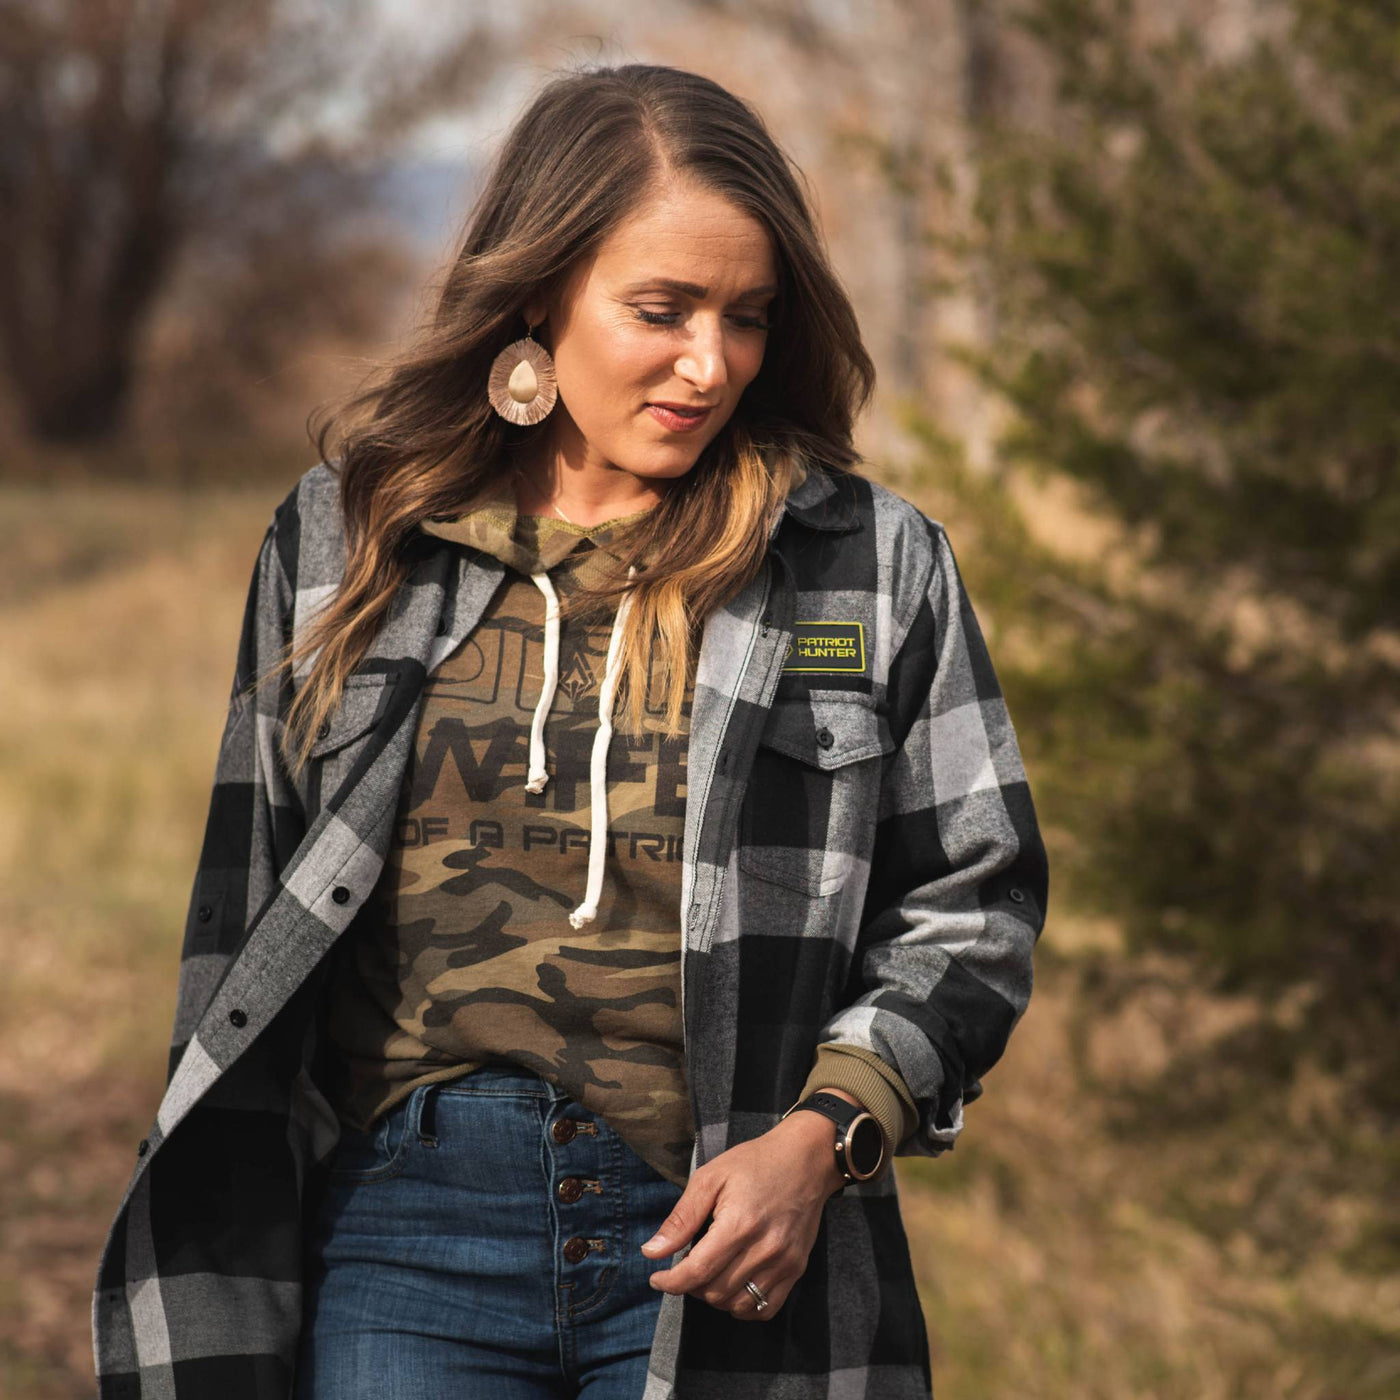 Women in plaid and camo hunting apparel